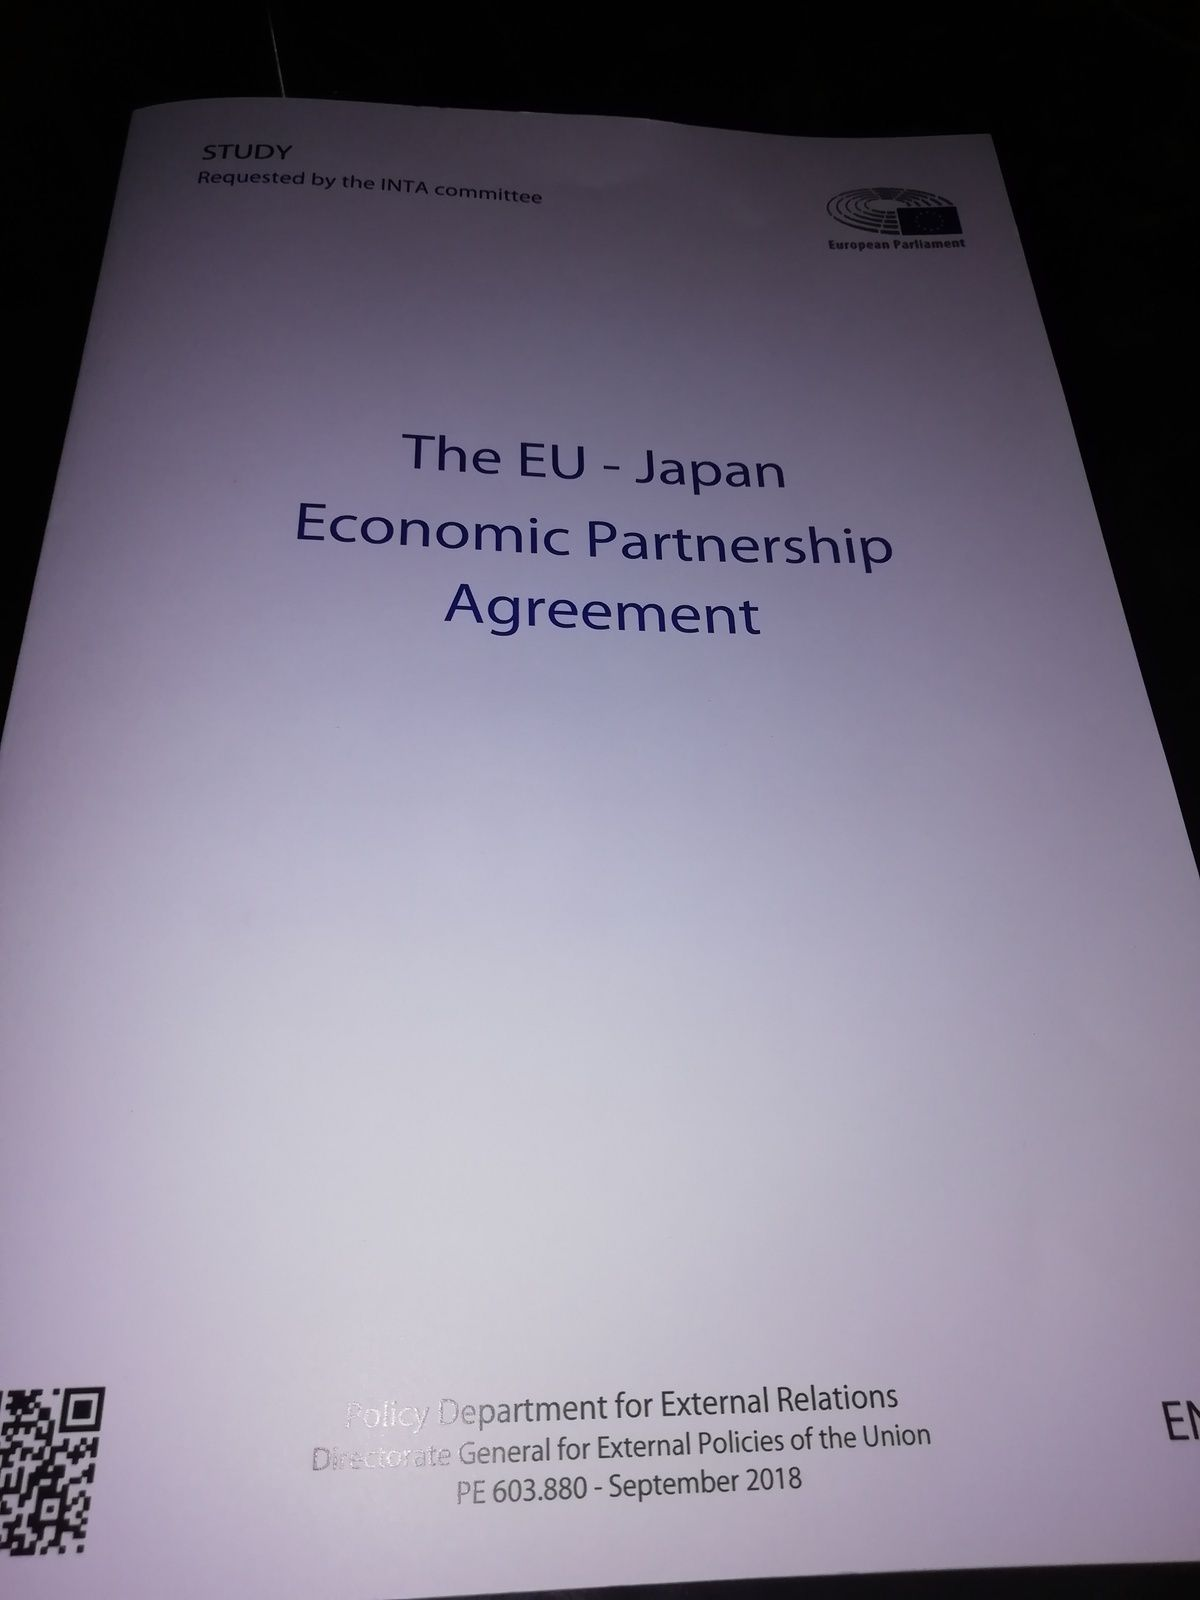 L'ACCORD COMMERCIAL ET STRATEGIQUE ENTRE UNION EUROPEENNE - JAPON PROPICE AUX PME